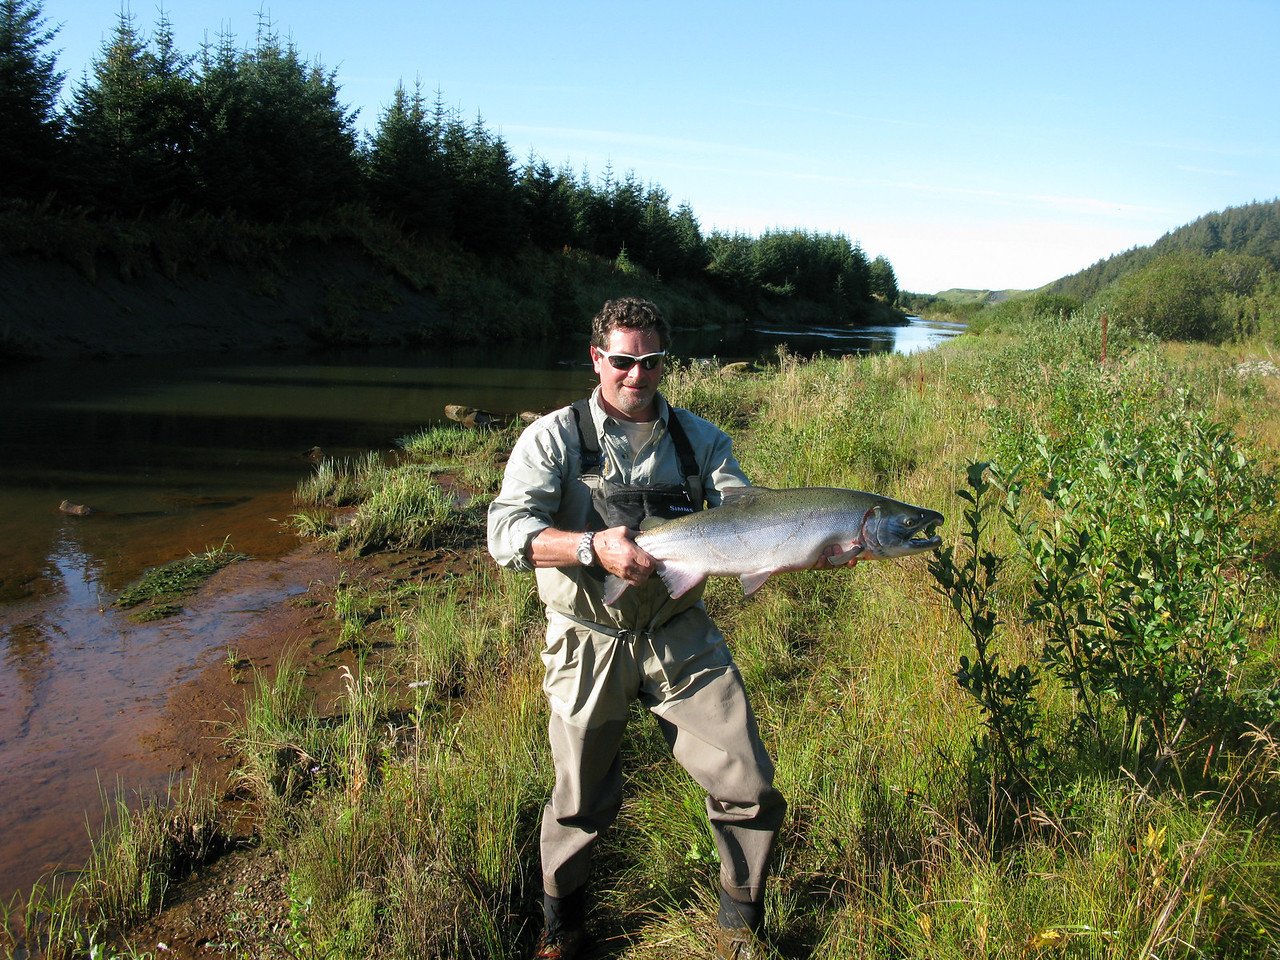 Silver Salmon on fly Kiklukh River Alaska, Sept 2010.